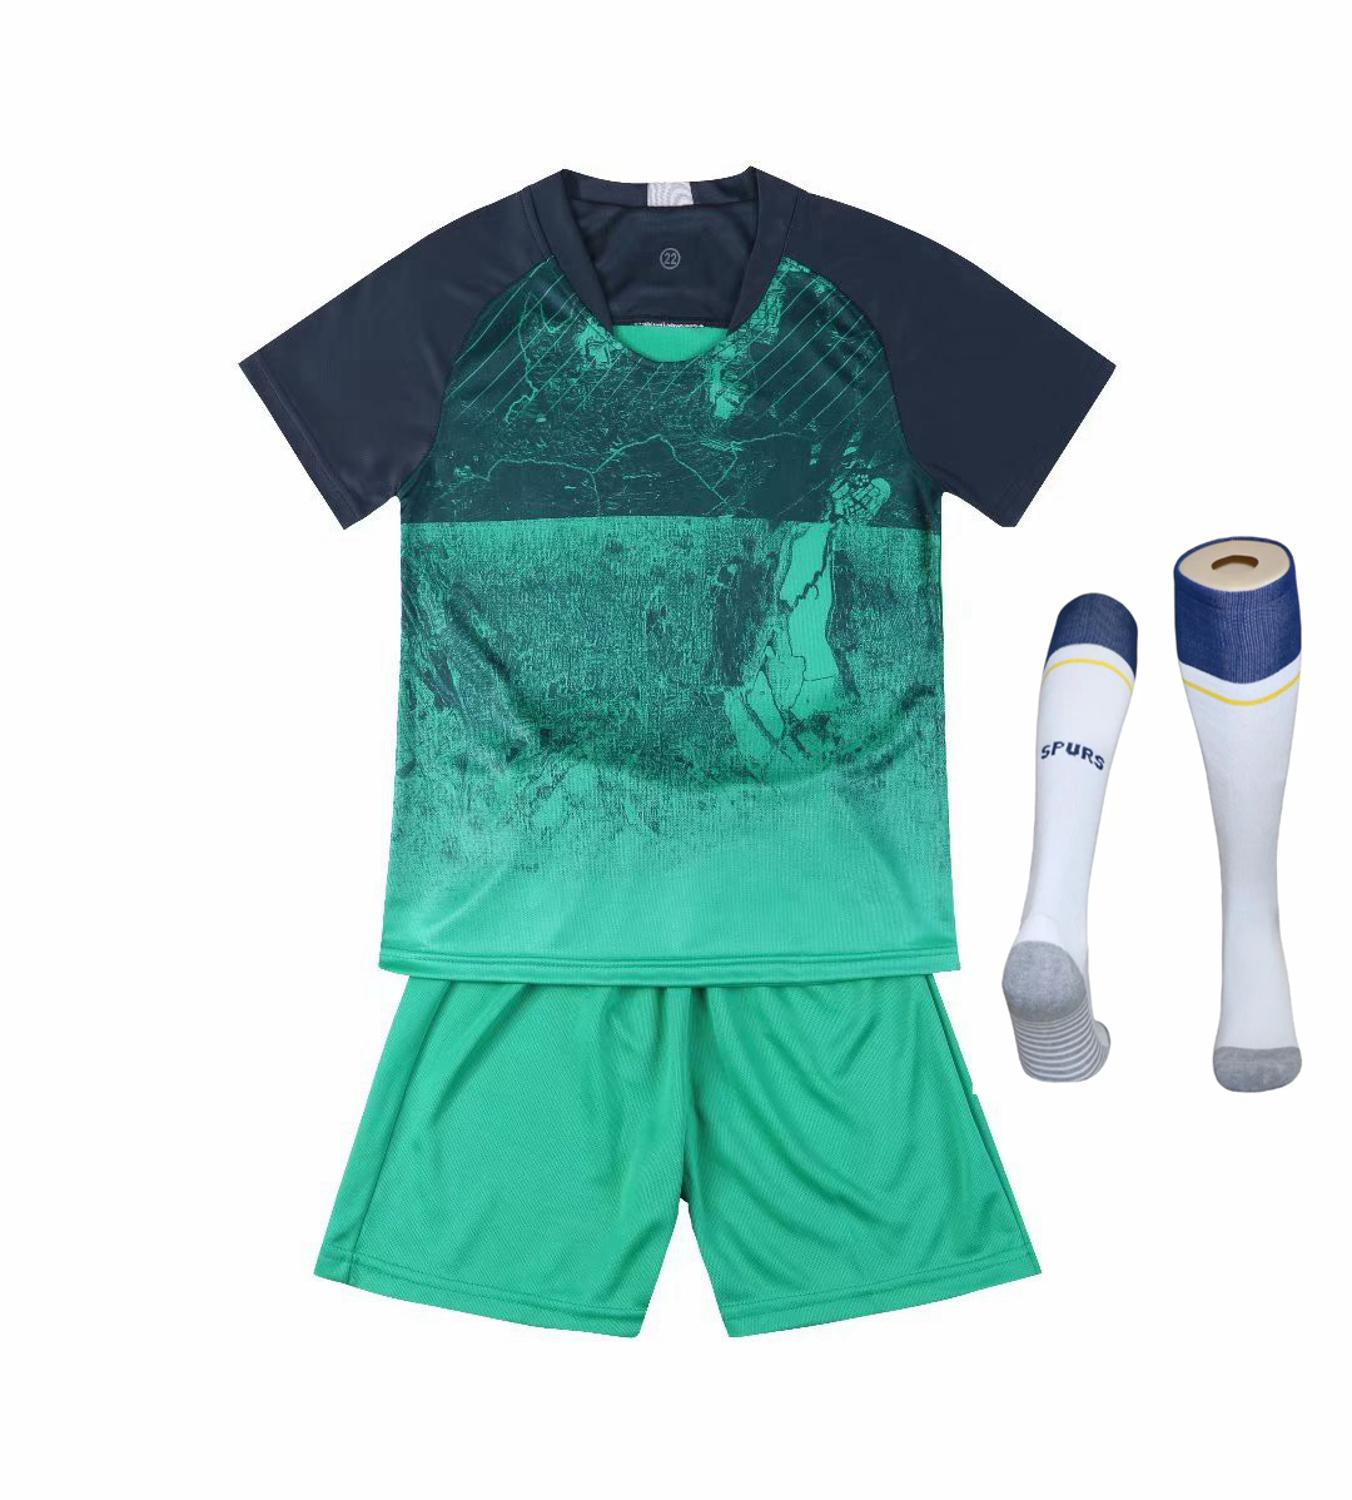 Children Sets football uniforms boys and girls sports kids youth training suits blank custom print soccer set with socks 21